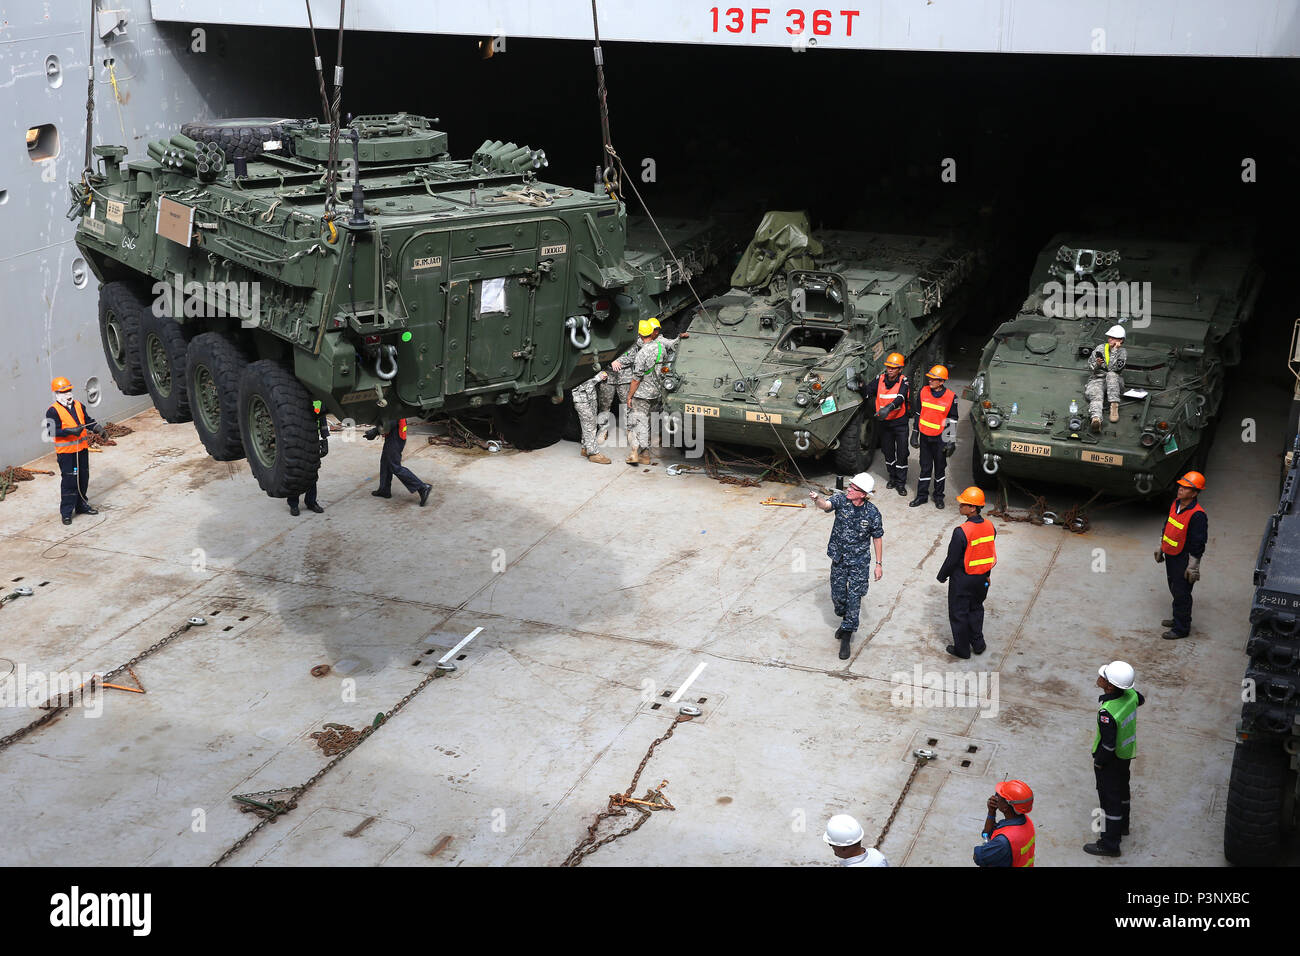 160712-N-IX266-004 SATTAHIP, Thailand—An M1126 Stryker is lowered into general purpose, heavy lift ship MV OCEAN GLORY during a backload of equipment at Chuk Samet, here, from exercise Hanuman Guardian, July 12. Military Sealift Command's contracted voyage-charter MV OCEAN GLORY recently conducted a backload of about 250 items in Thailand as part of U.S. Army Pacific's mobility operation PACIFIC PATHWAYS 16-2. (U.S. Navy photo by Grady T. Fontana/Released) - Stock Image